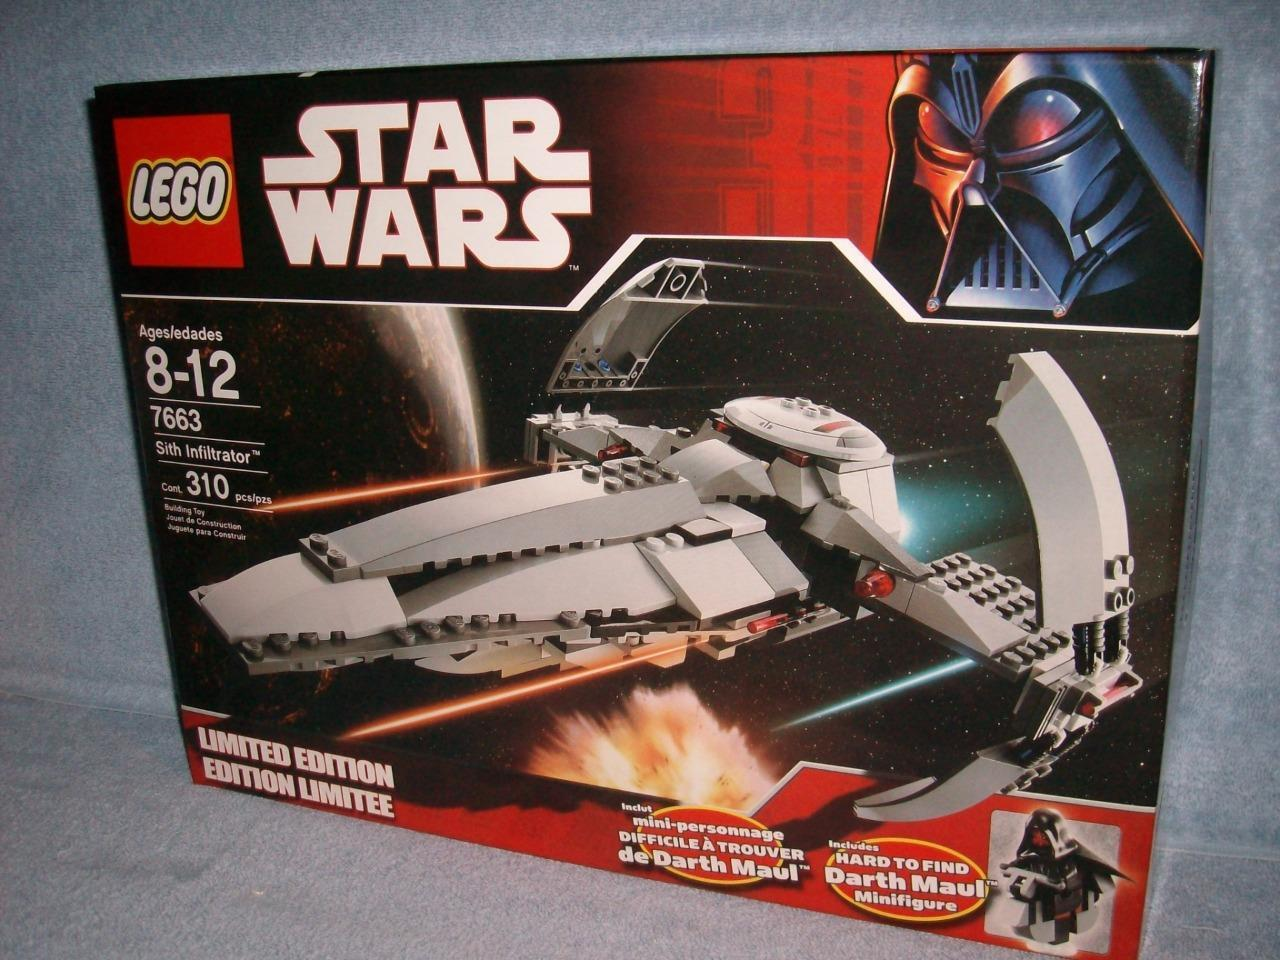 Sith Infiltrator Limited Edition Lego Star Wars 7663 310 pcs 2007 Maul Minifigs